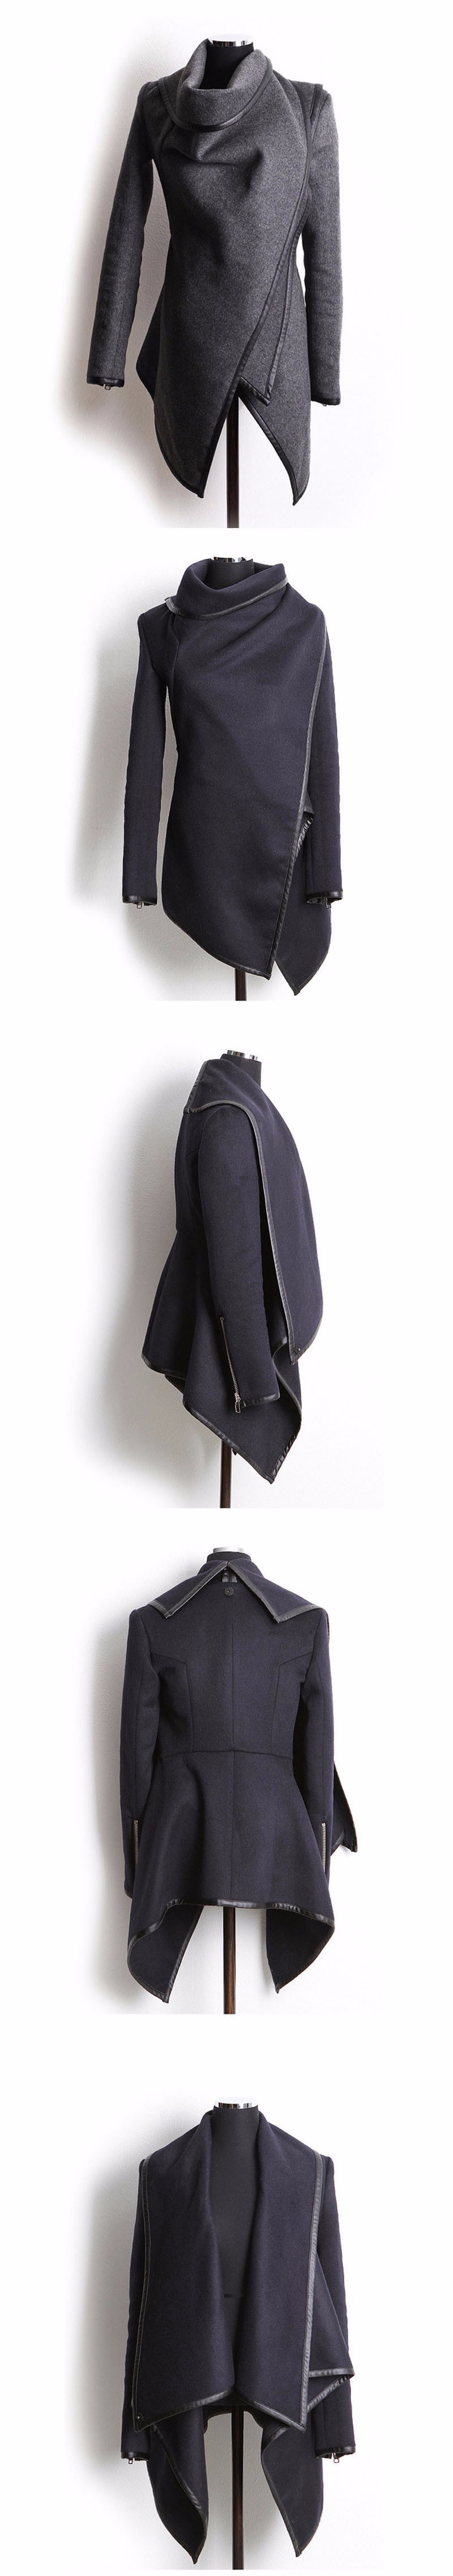 2015 New Fashion Winter Woolen Overcoat Women Jackets Woolen Coat Free Shipping Casaco FemininoTurn-Down Collar Zipper Jacket